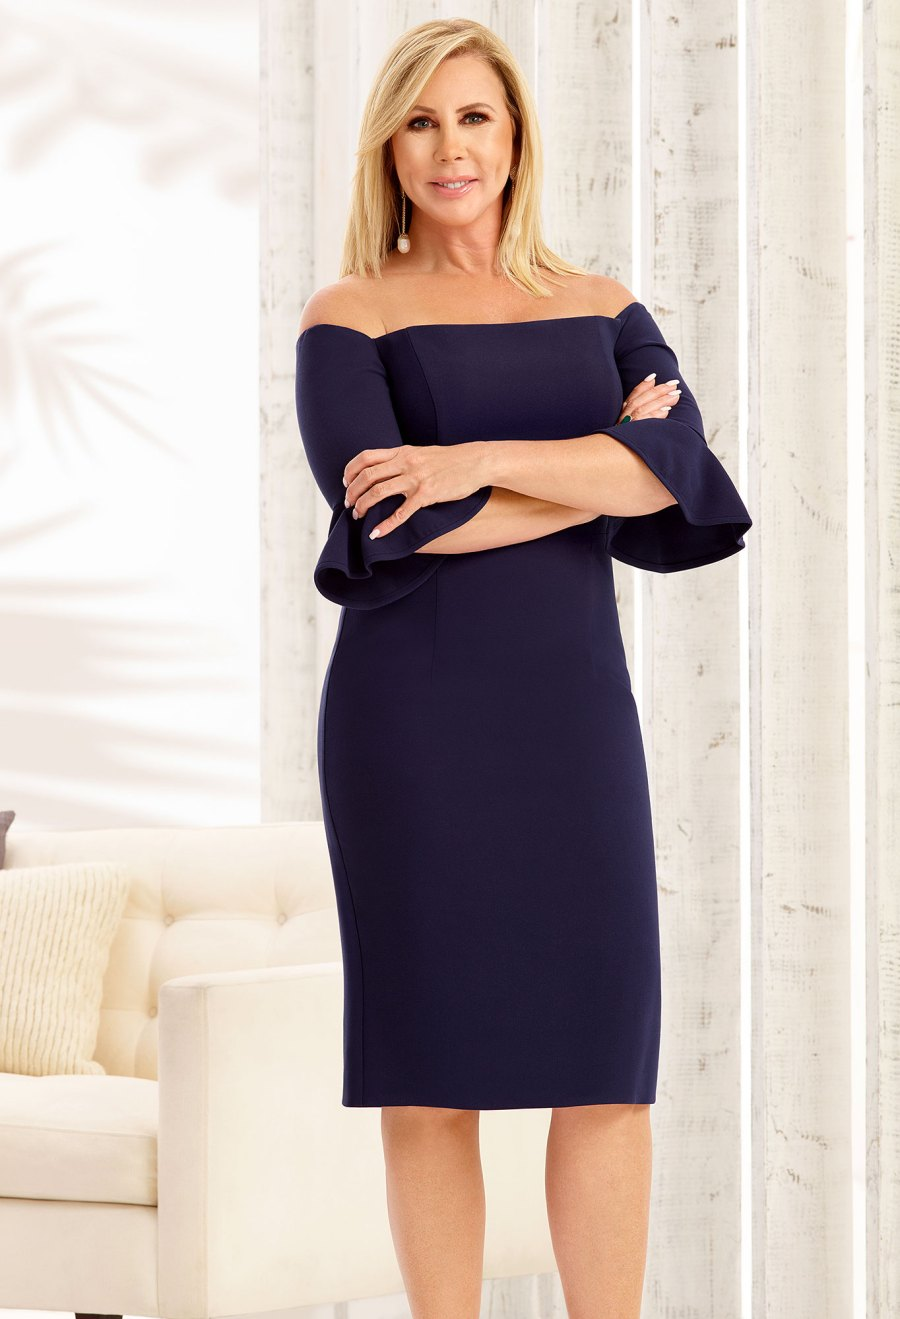 Vicki Gunvalson The Real Housewives of Orange County